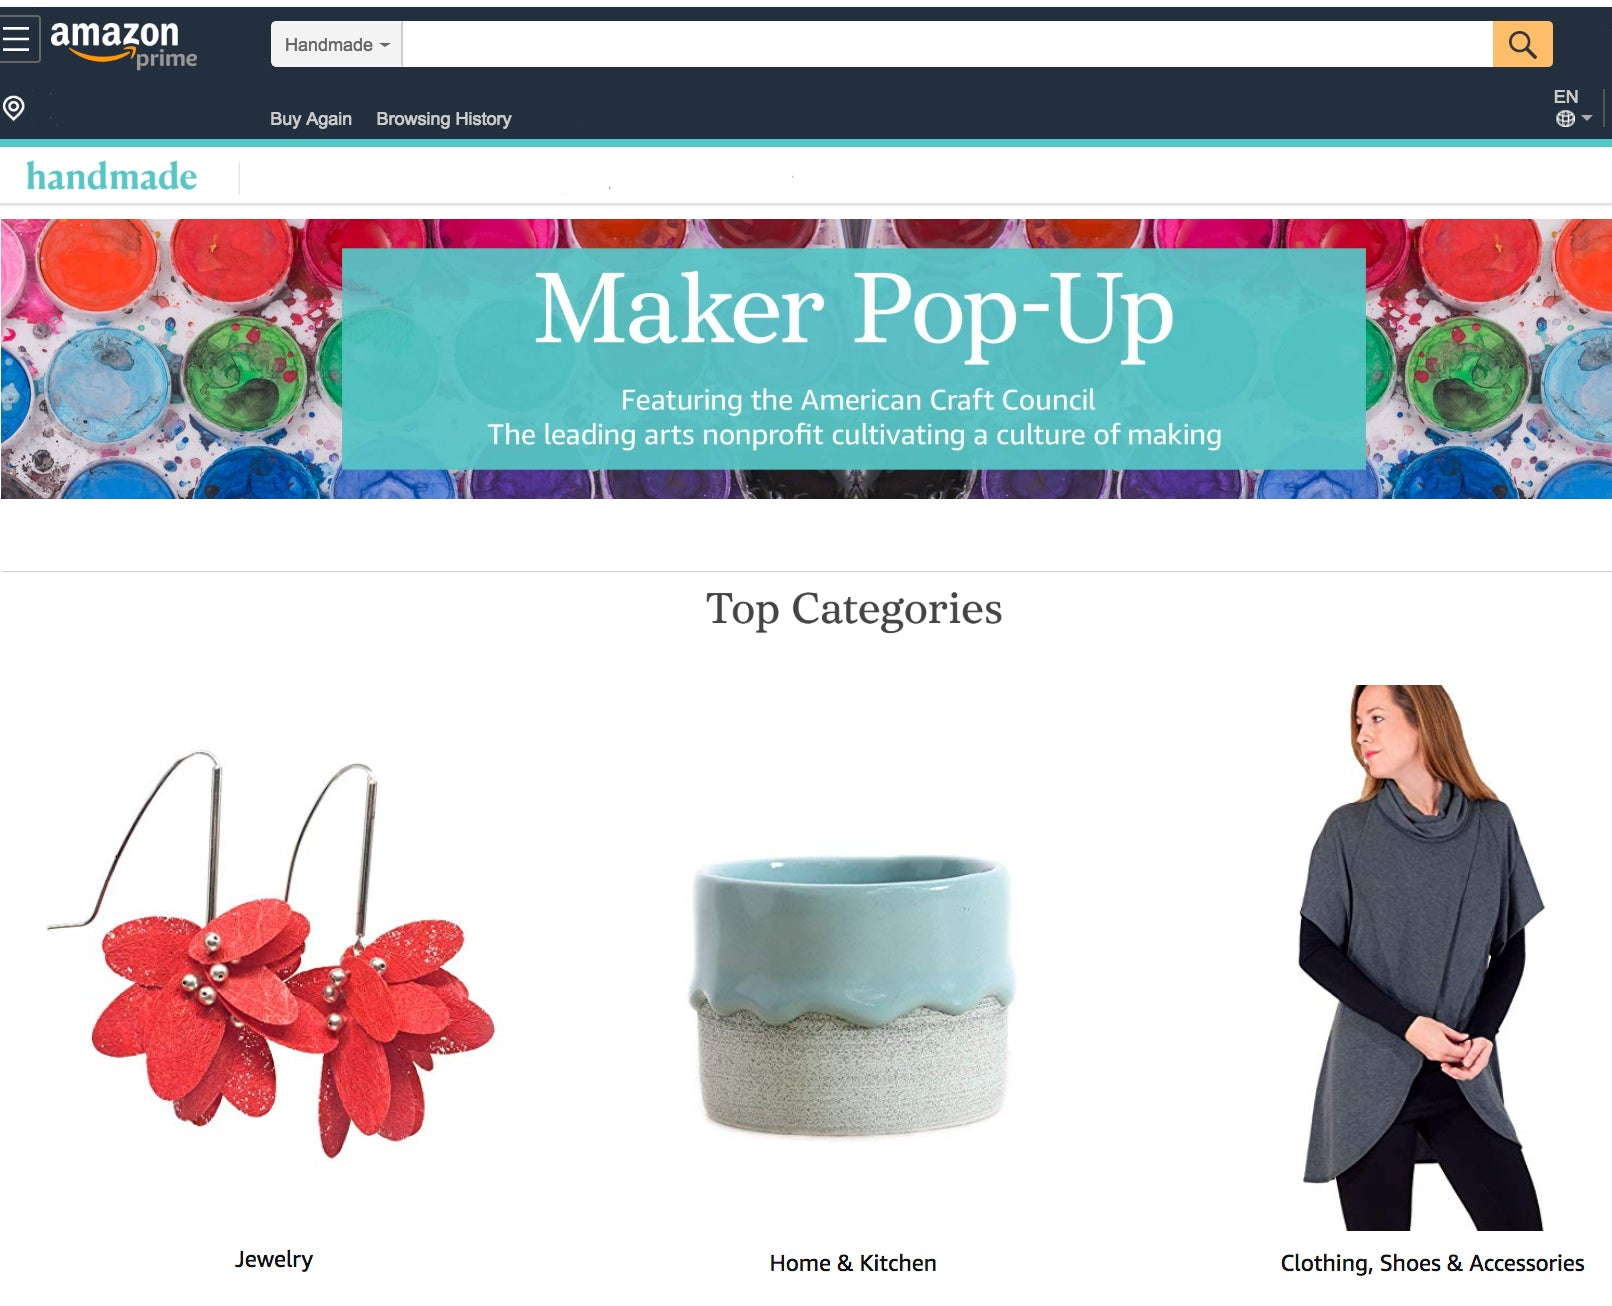 7c8328477 My Exciting News: I've Been Selected for the ACC/Amazon Maker Pop-Up ...